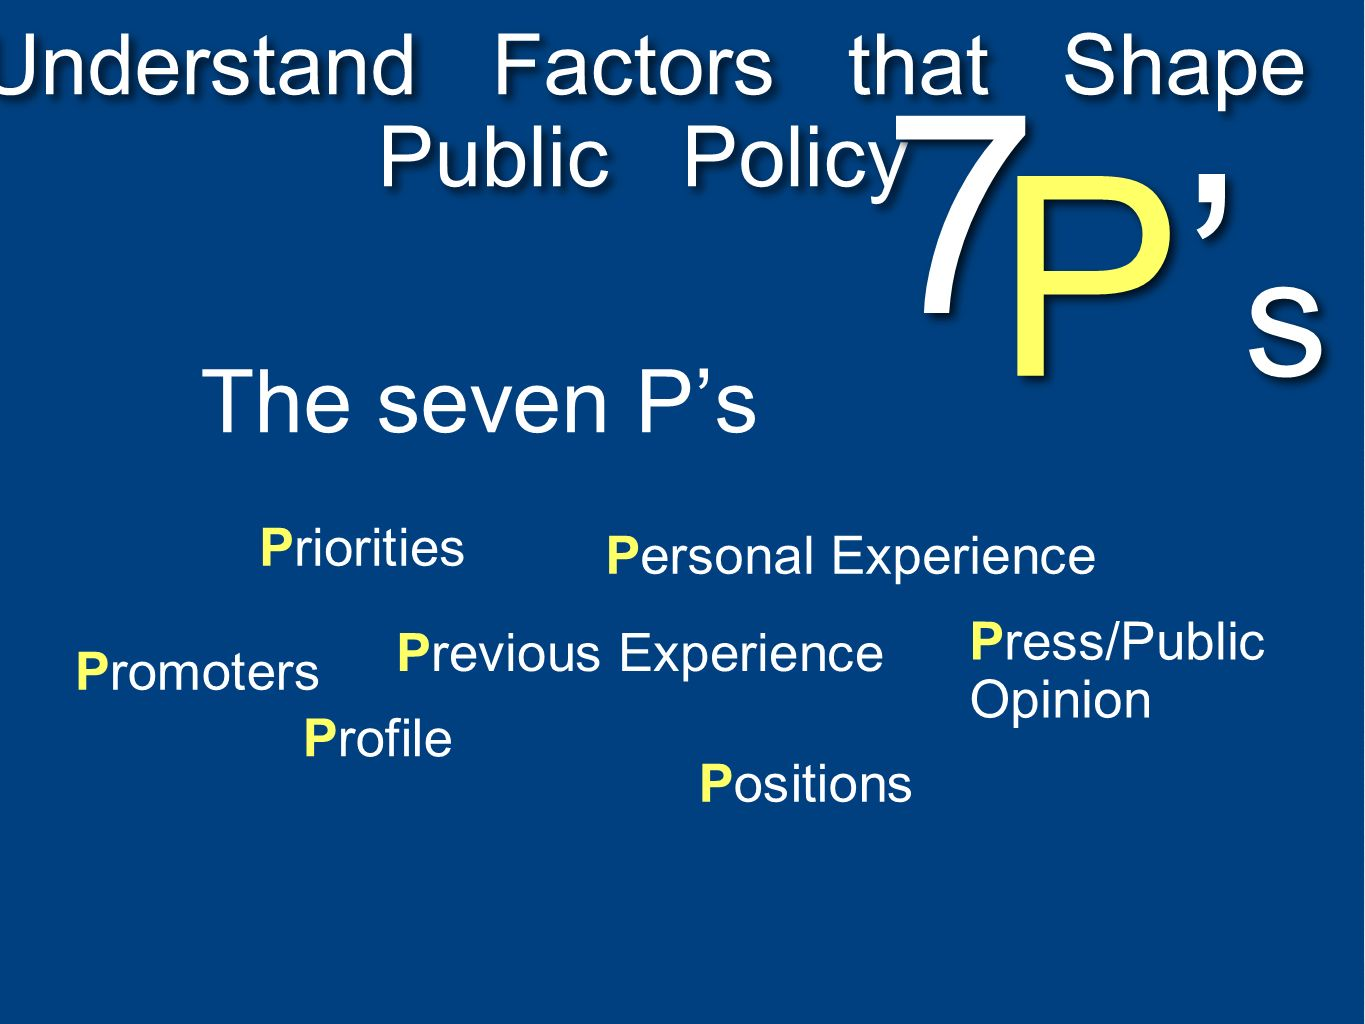 Understand Factors that Shape Public Policy 7 7 P s Profile Previous Experience Positions Press/Public Opinion Promoters Priorities Personal Experienc